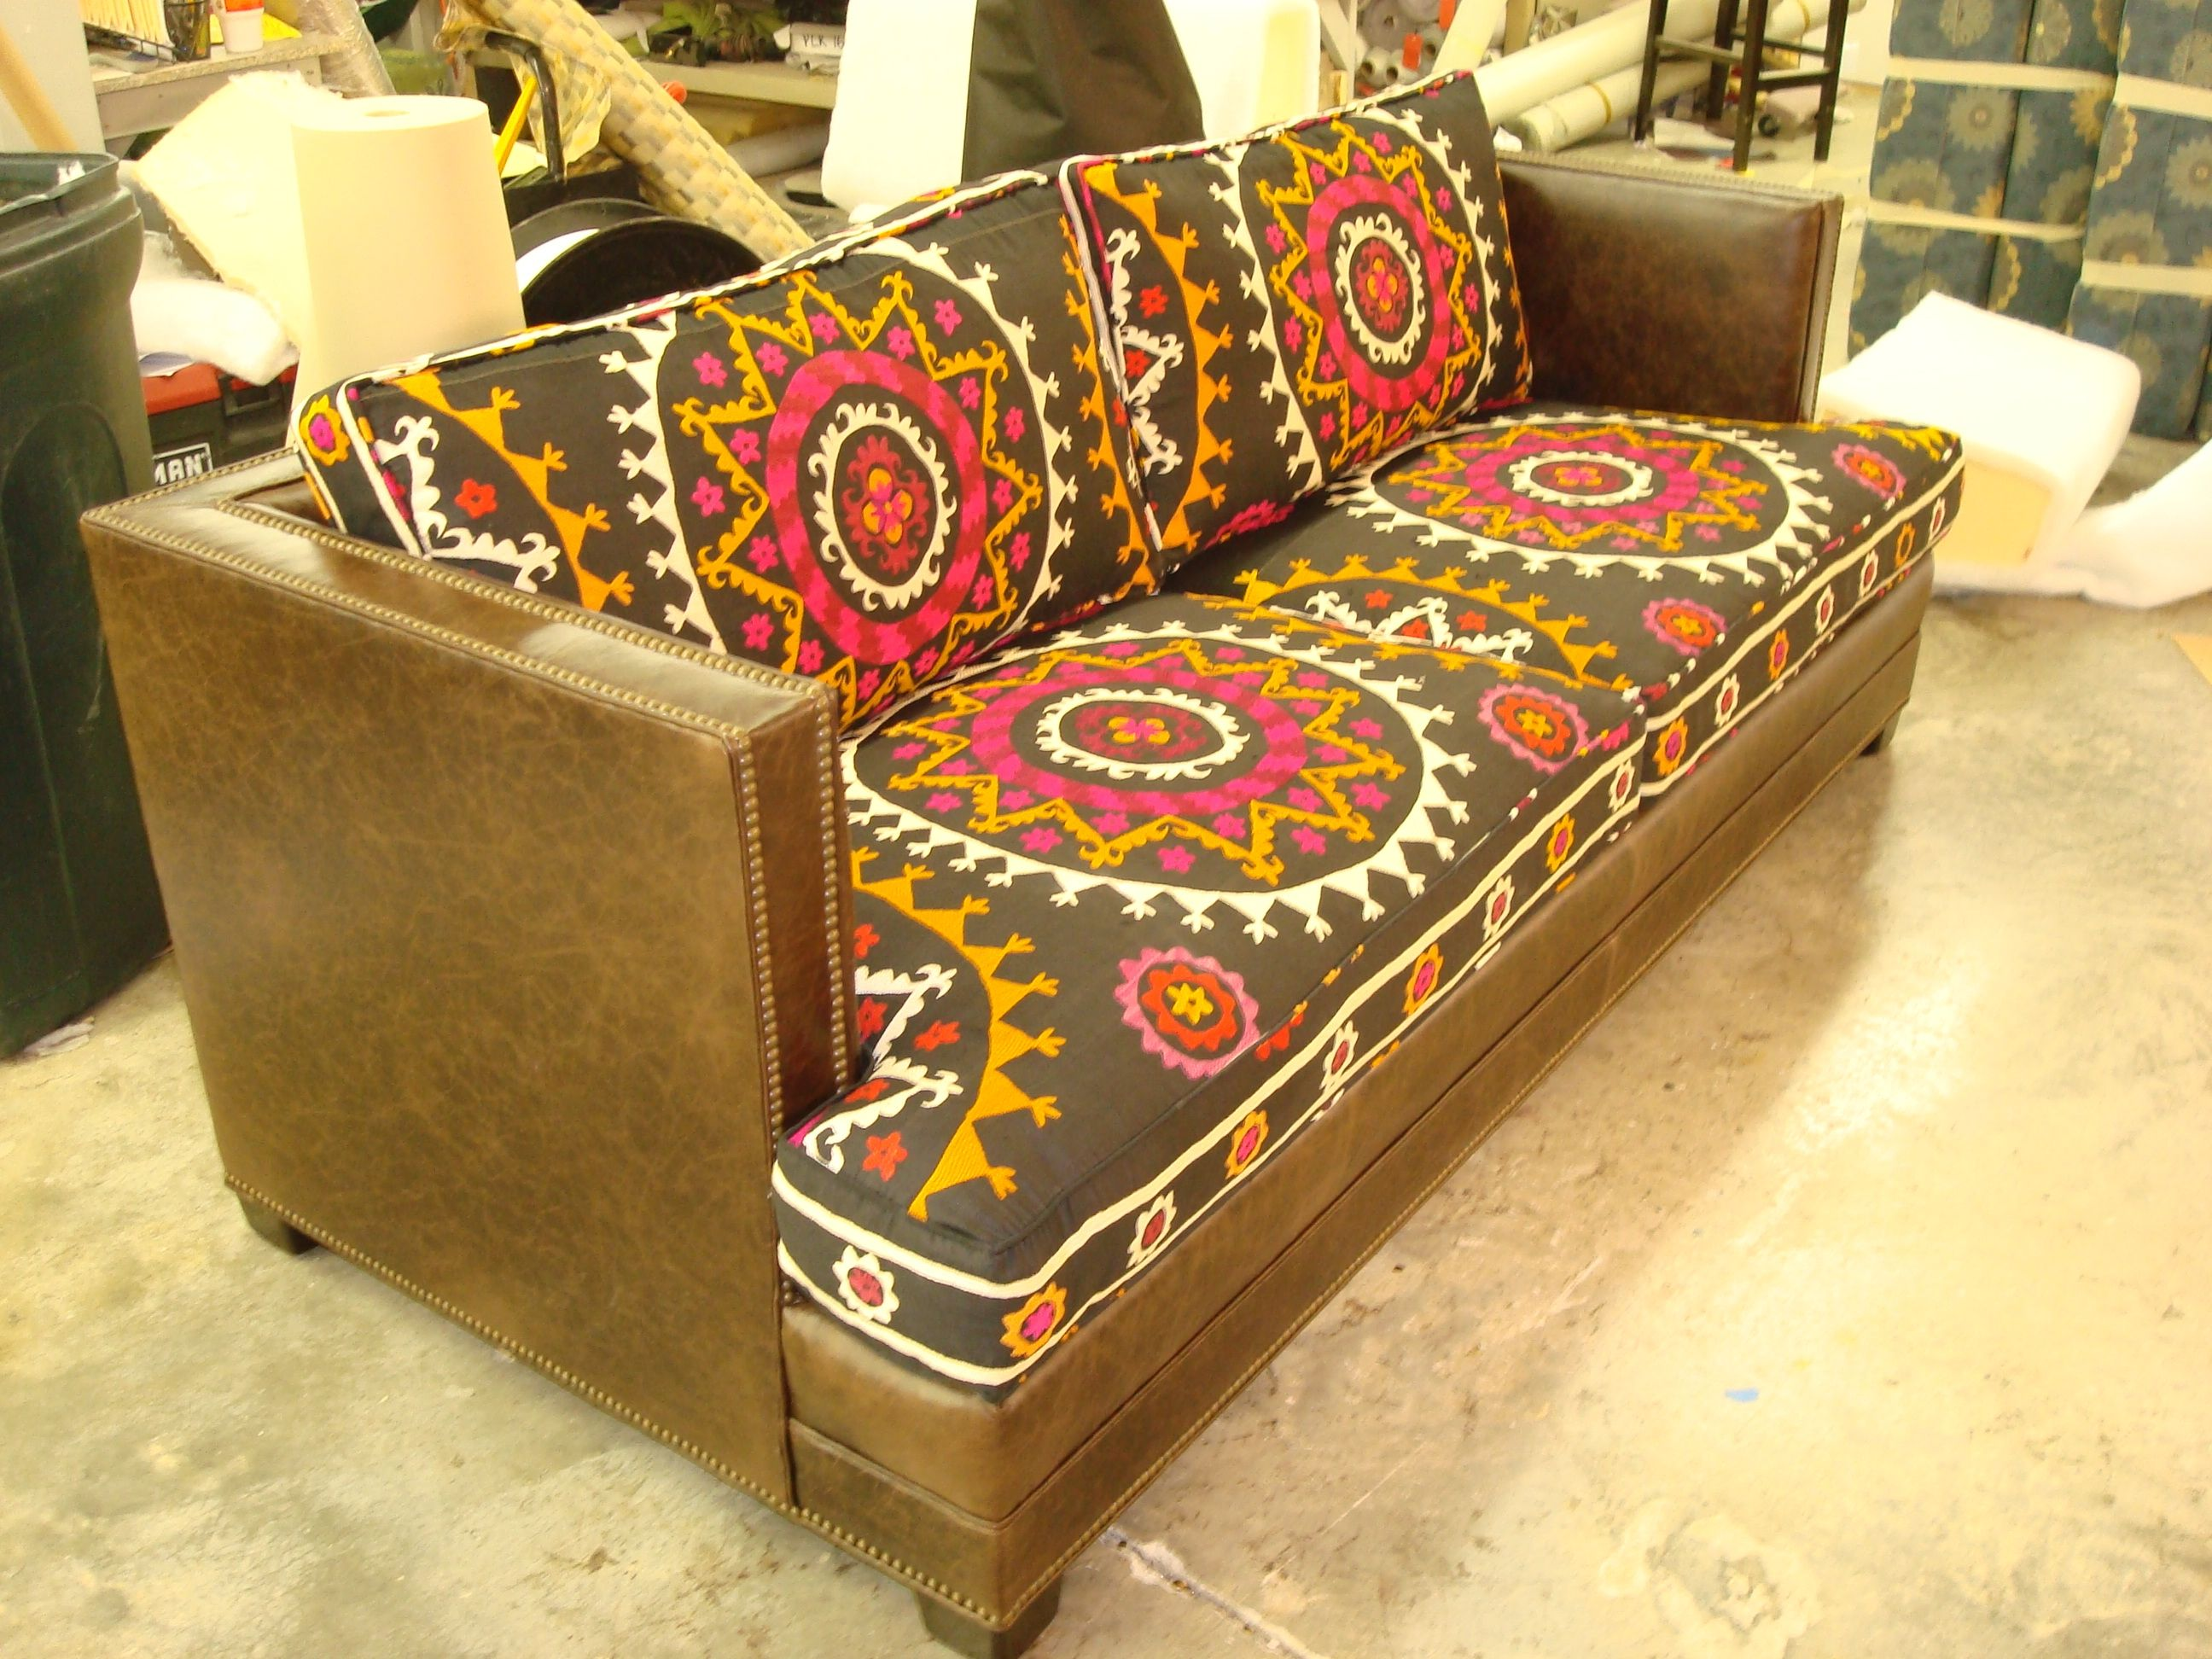 Covering Leather Sofa With Fabric Design Cushions On Sofa